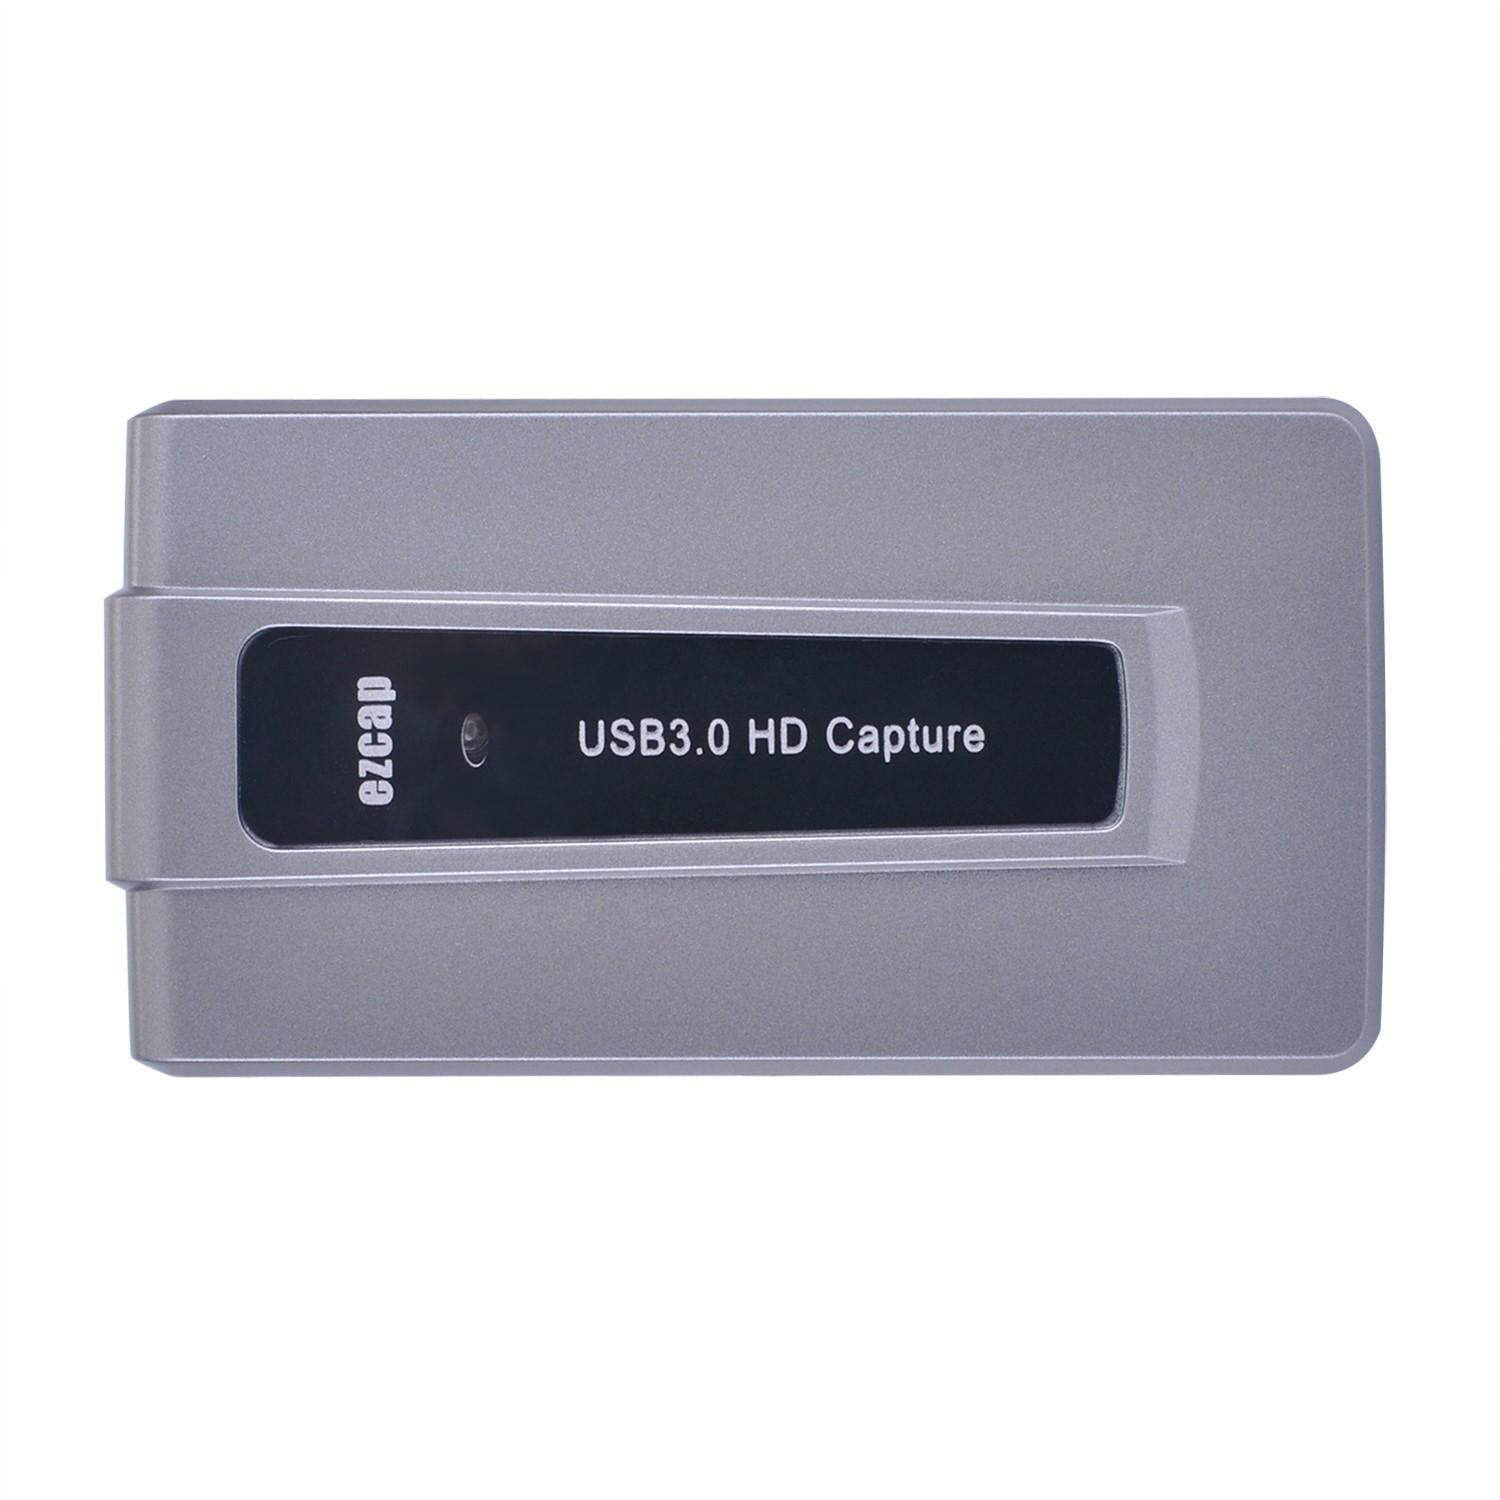 images/new-electronics/A1436889PB/ezcap287-usb30-1080p-hd-game-live-broadcast-video-capture-box-for-obs-pc-windows-plusbuyer.jpg